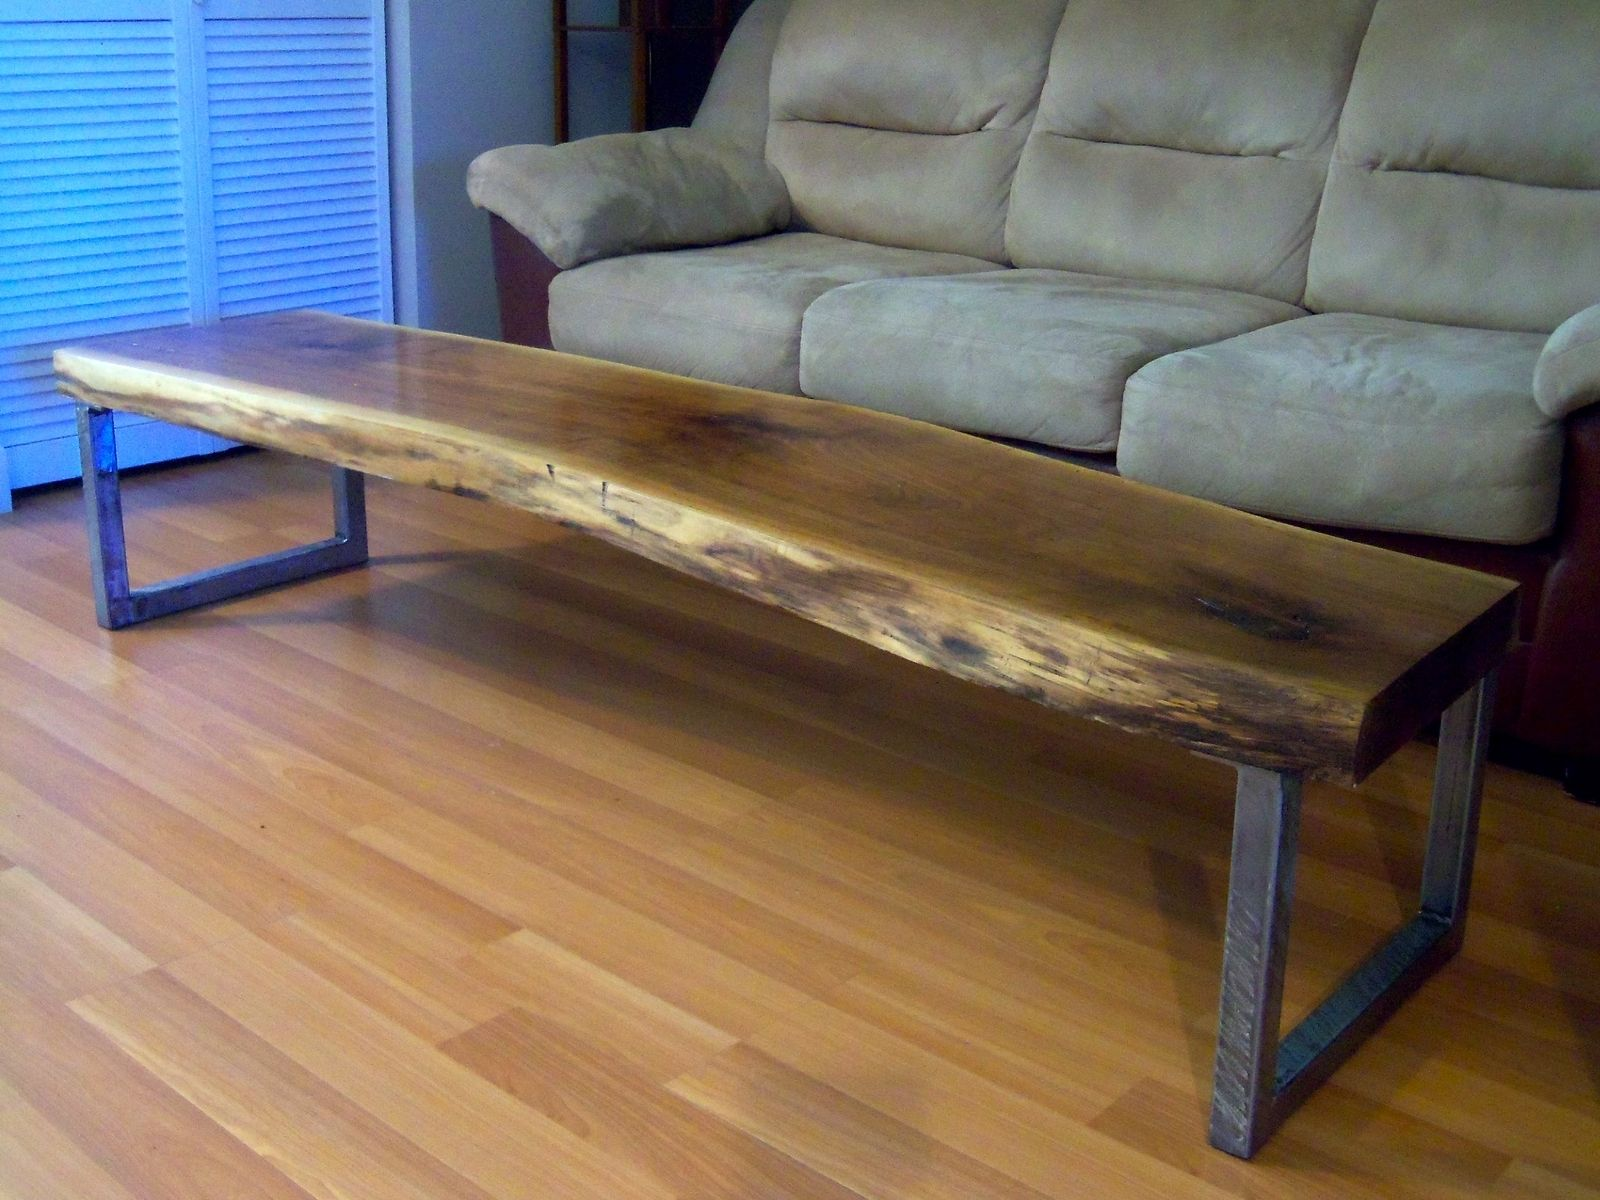 Hand Made Live Edge Black Walnut Coffee Table With Square Legs By Ozma Design